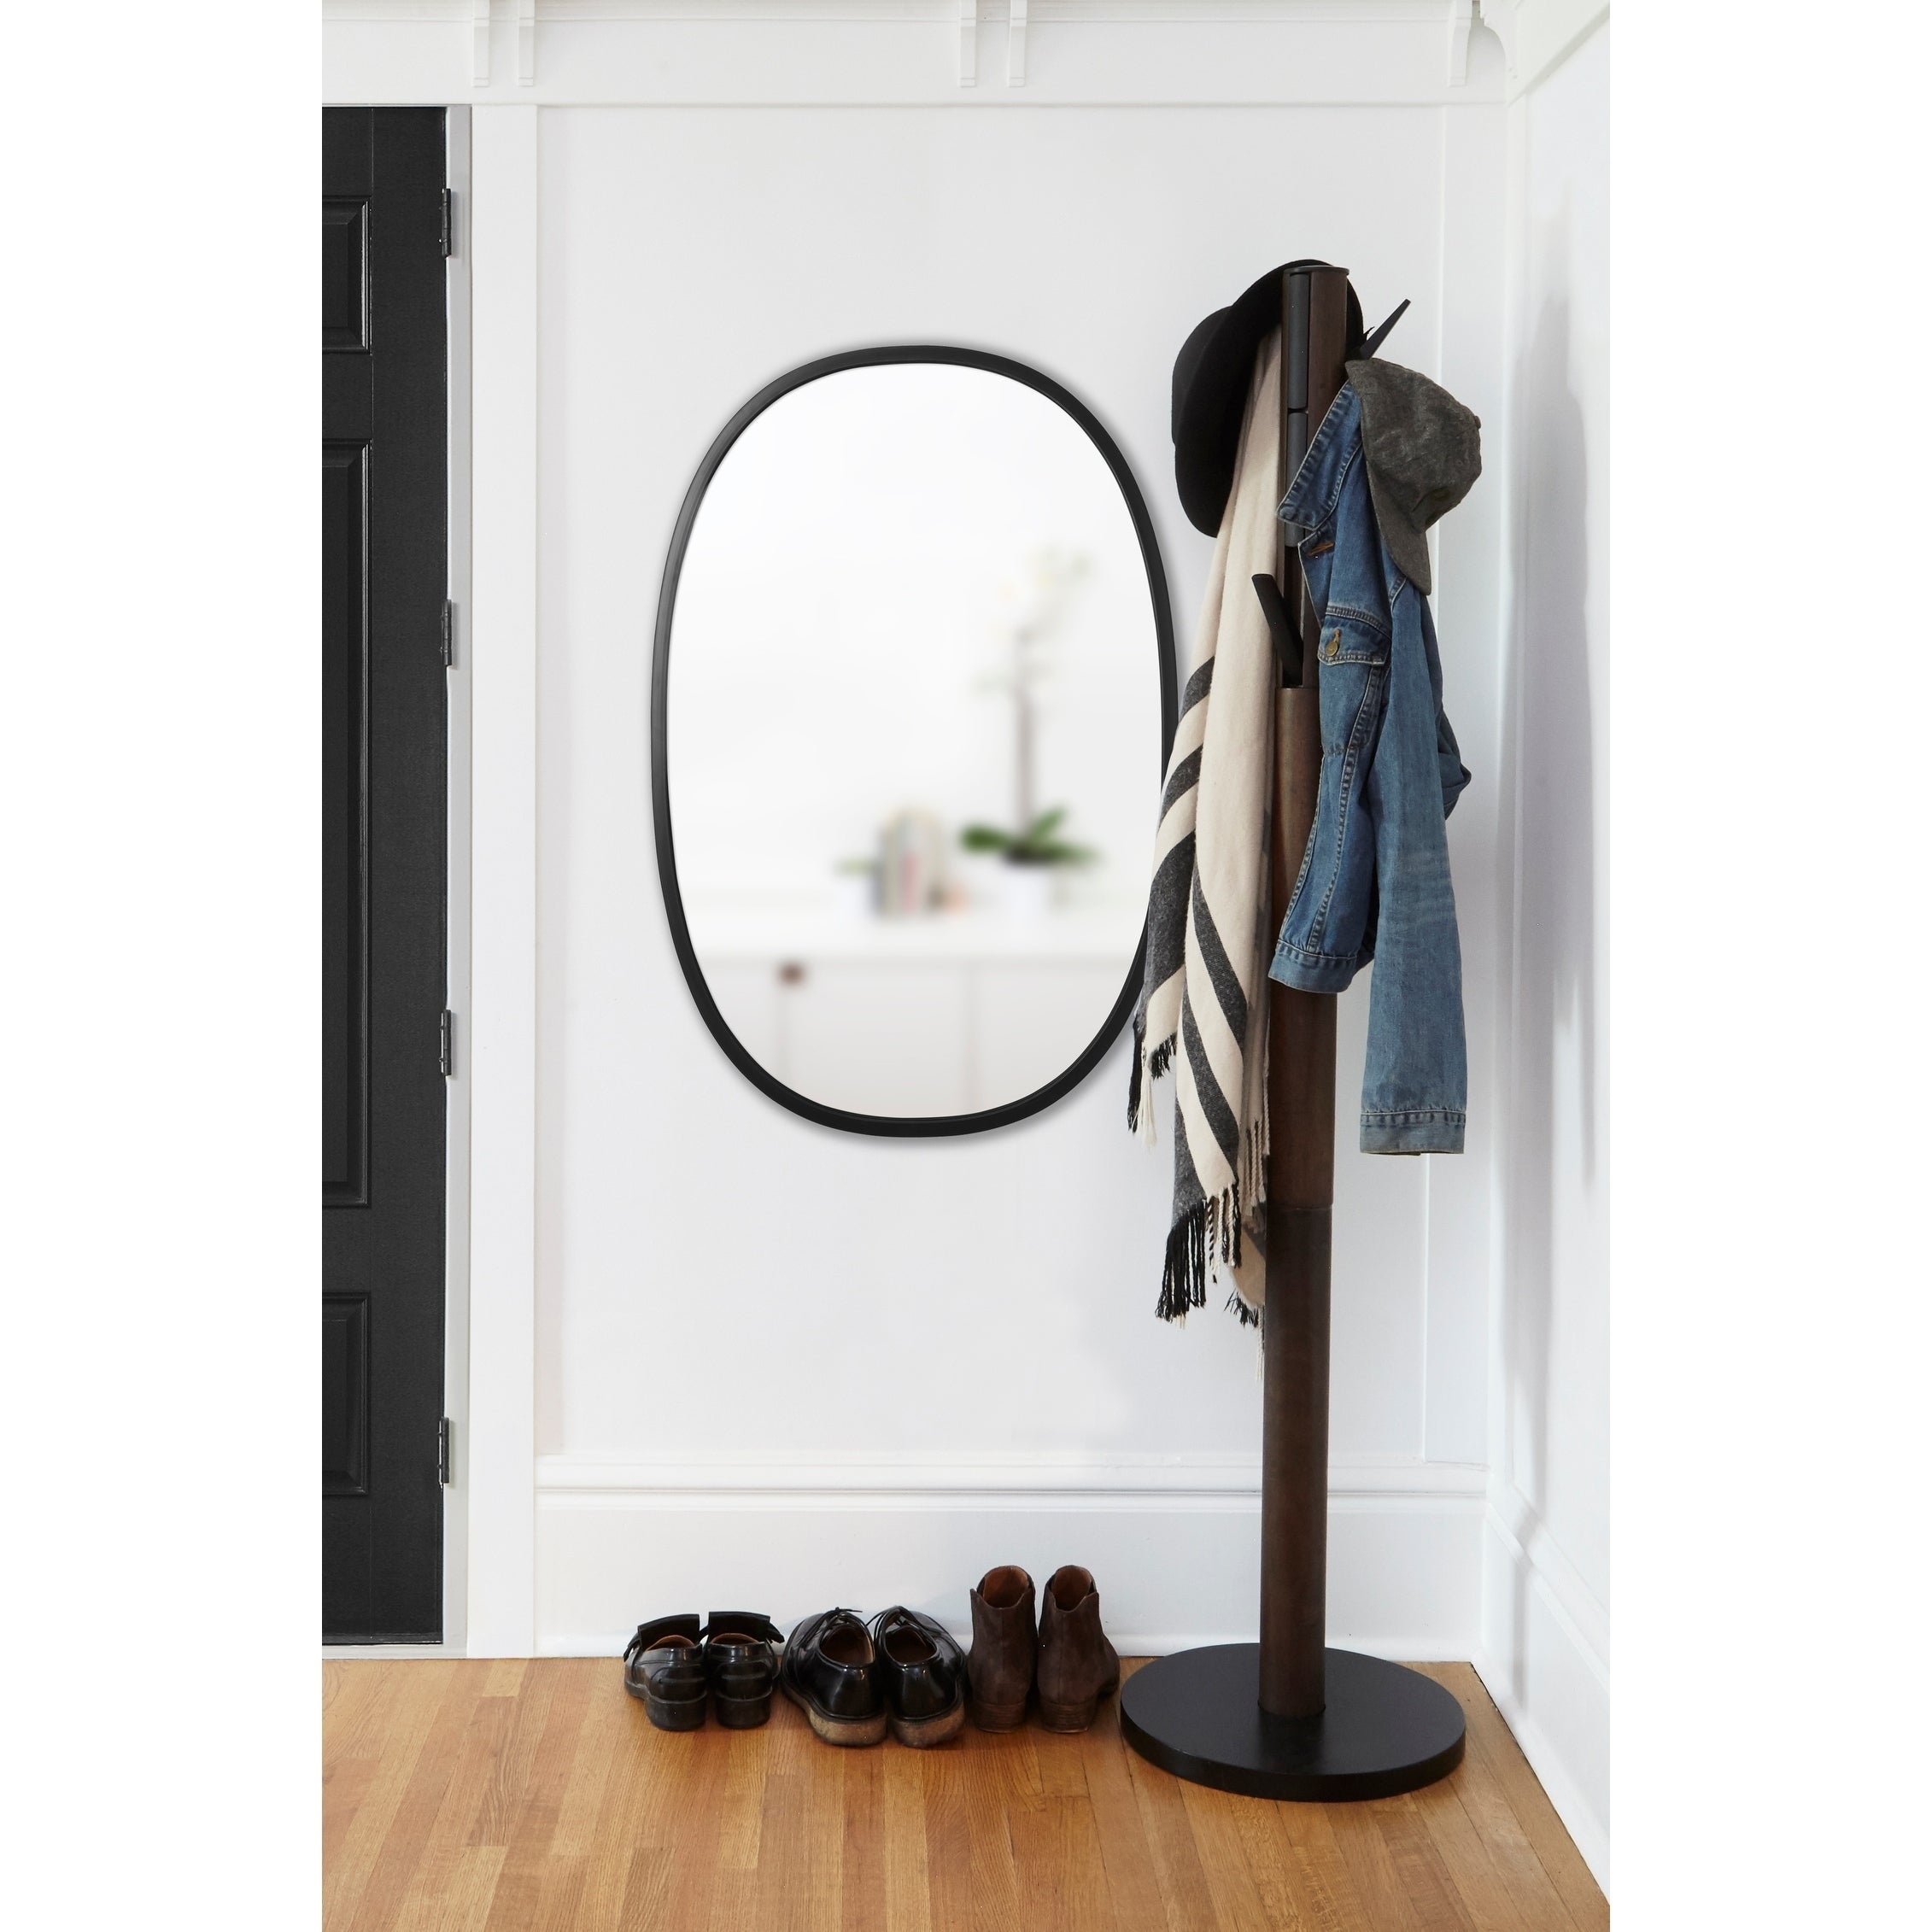 Umbra Hub Mirror Black Oval 24 Inches X 36 Inches Pertaining To Hub Modern And Contemporary Accent Mirrors (View 23 of 30)